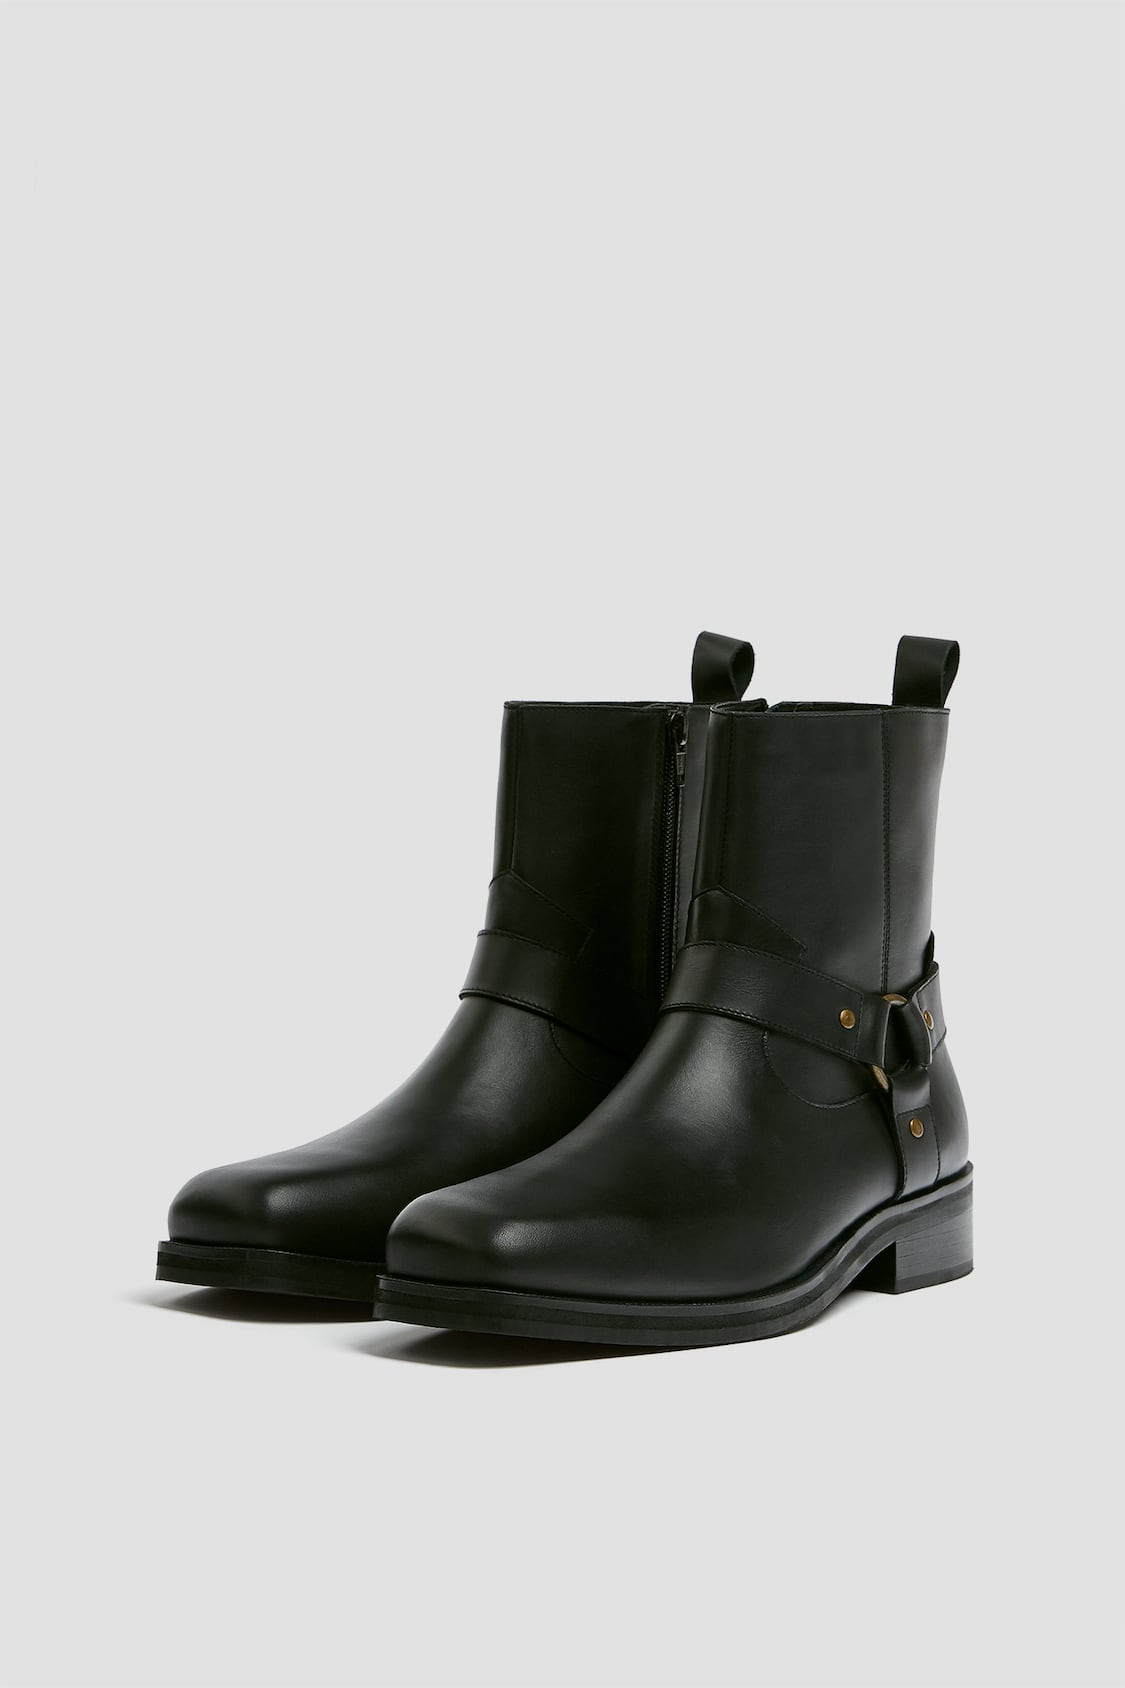 cowboy boots men from Pull and Bear